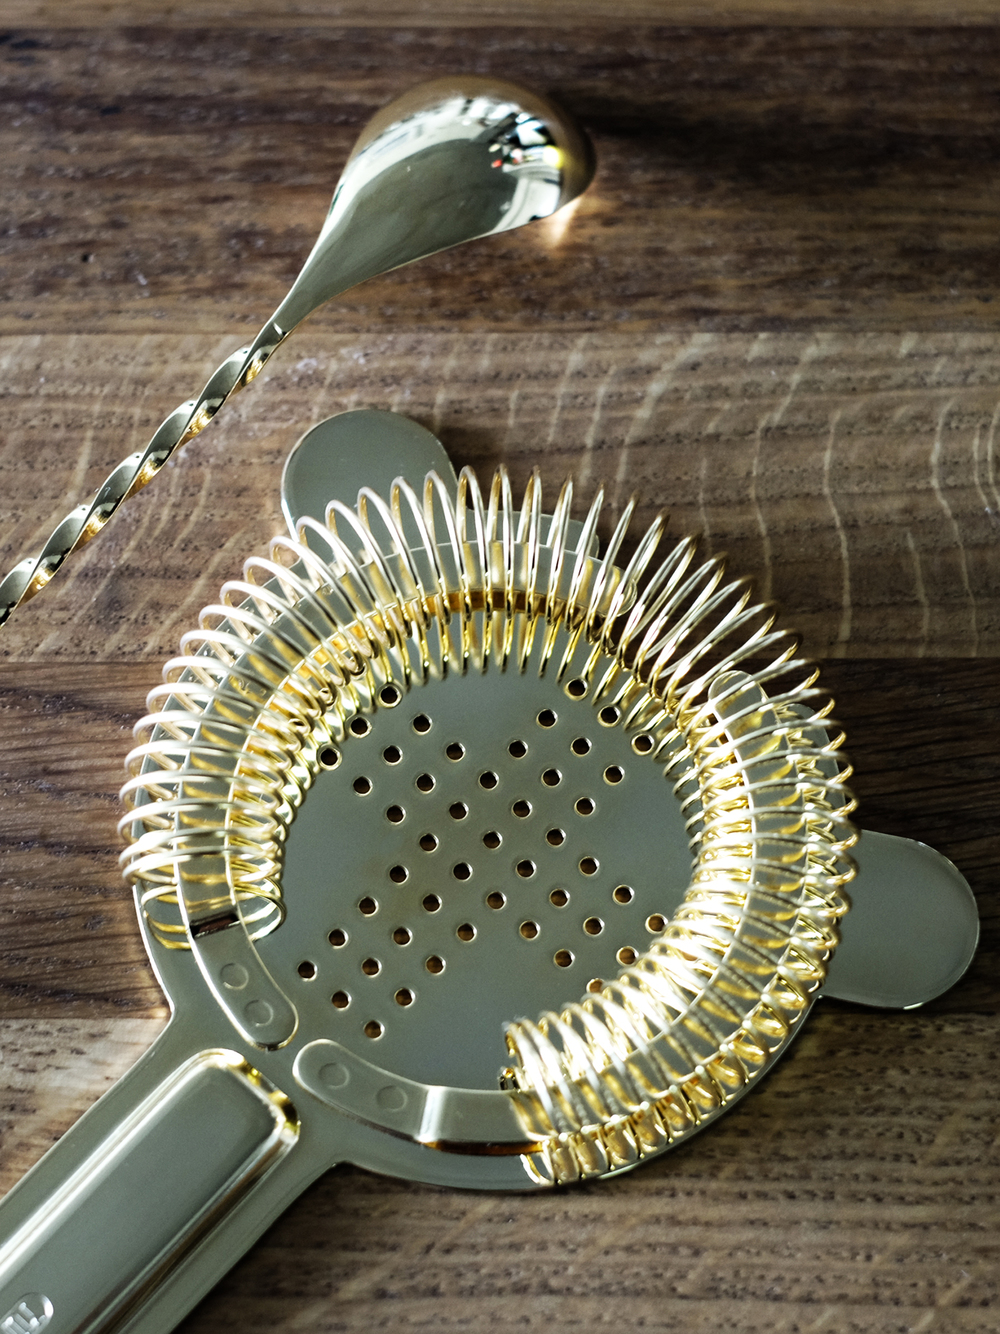 gold_strainer_stir